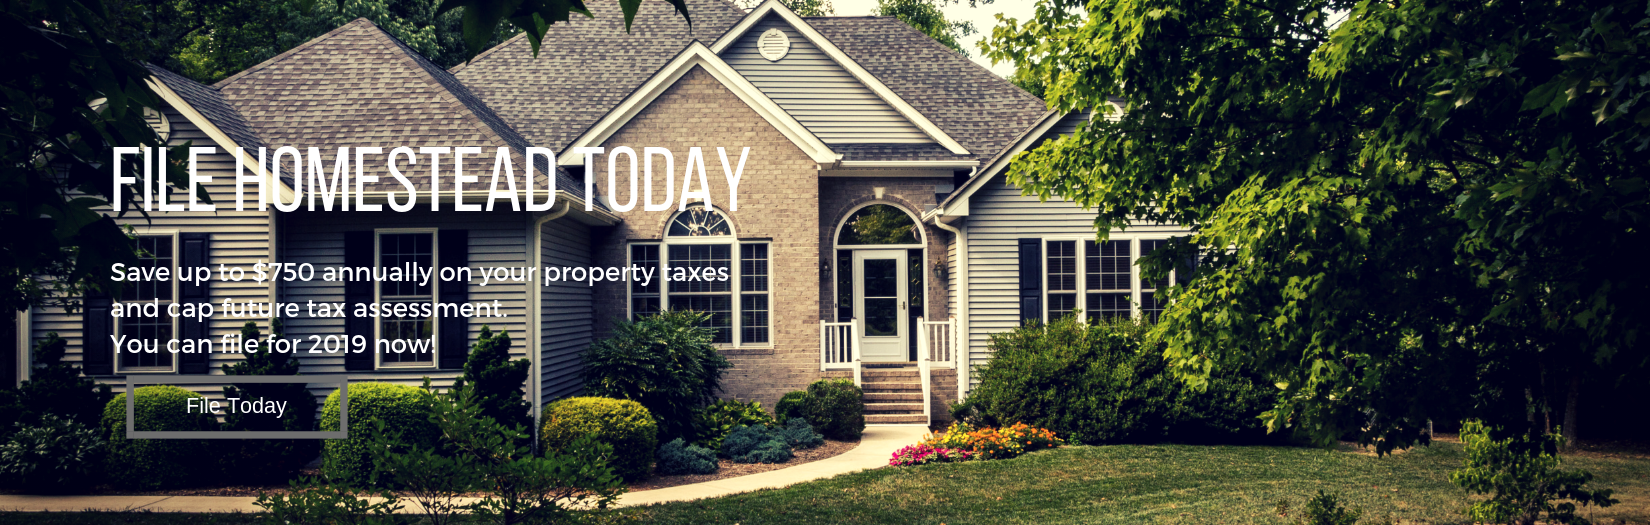 File Homestead Exemption Online Today